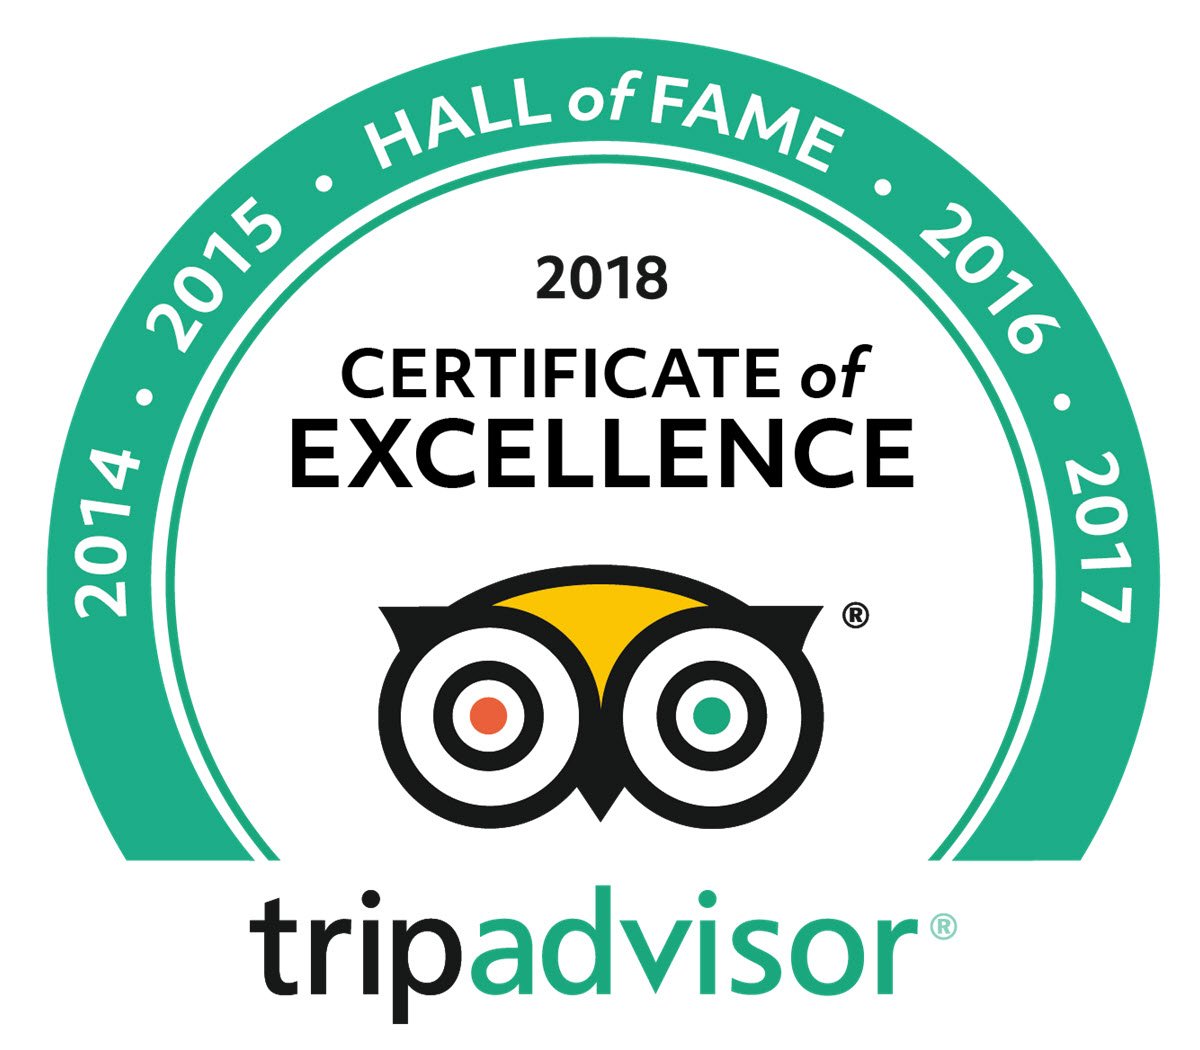 2018 Hall of Fame tripadvisor logo